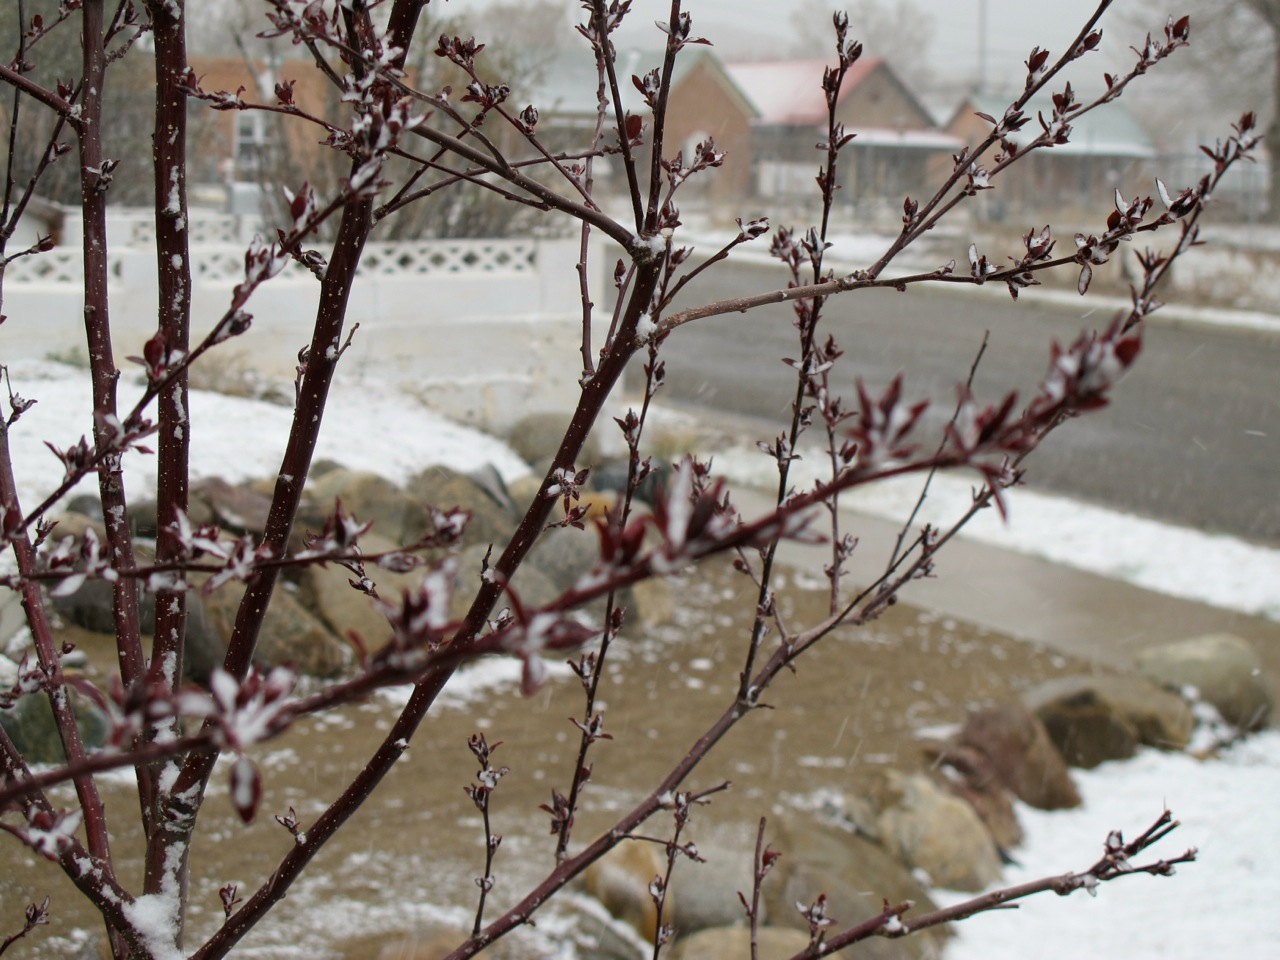 Snow clings to tiny crapapple leaves and other surfaces.